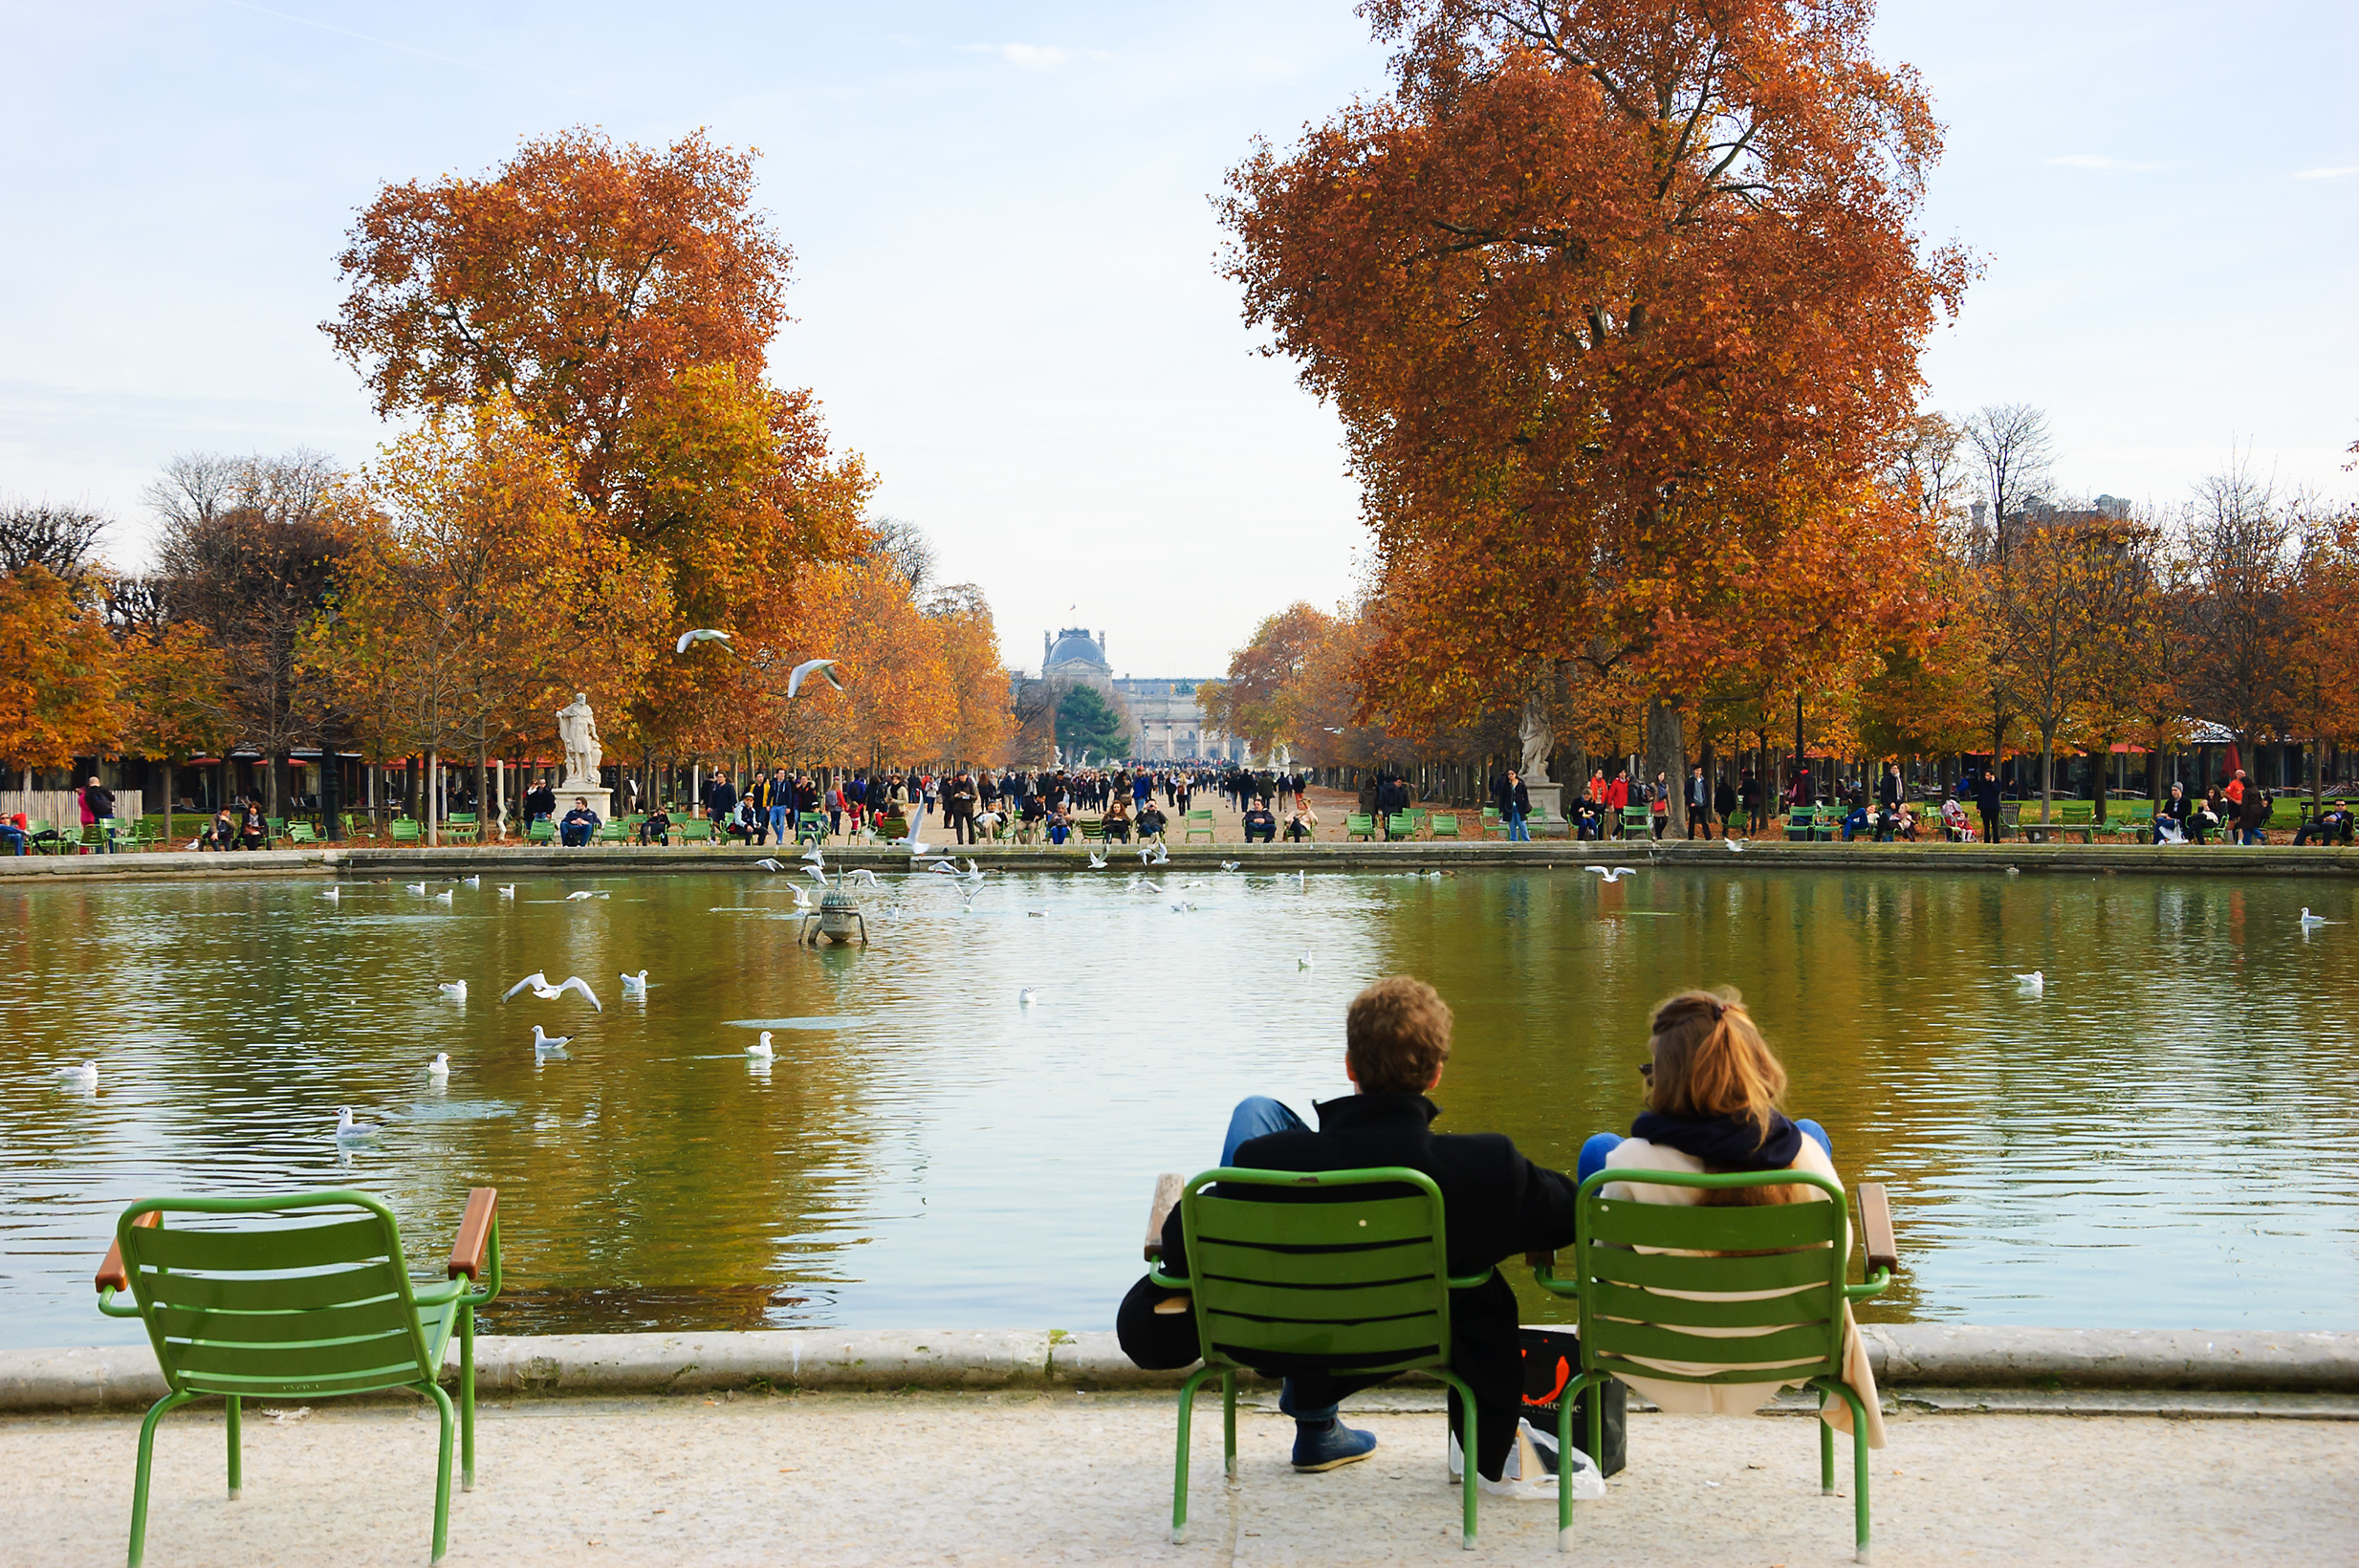 Grab a seat at Jardin des Tuileries